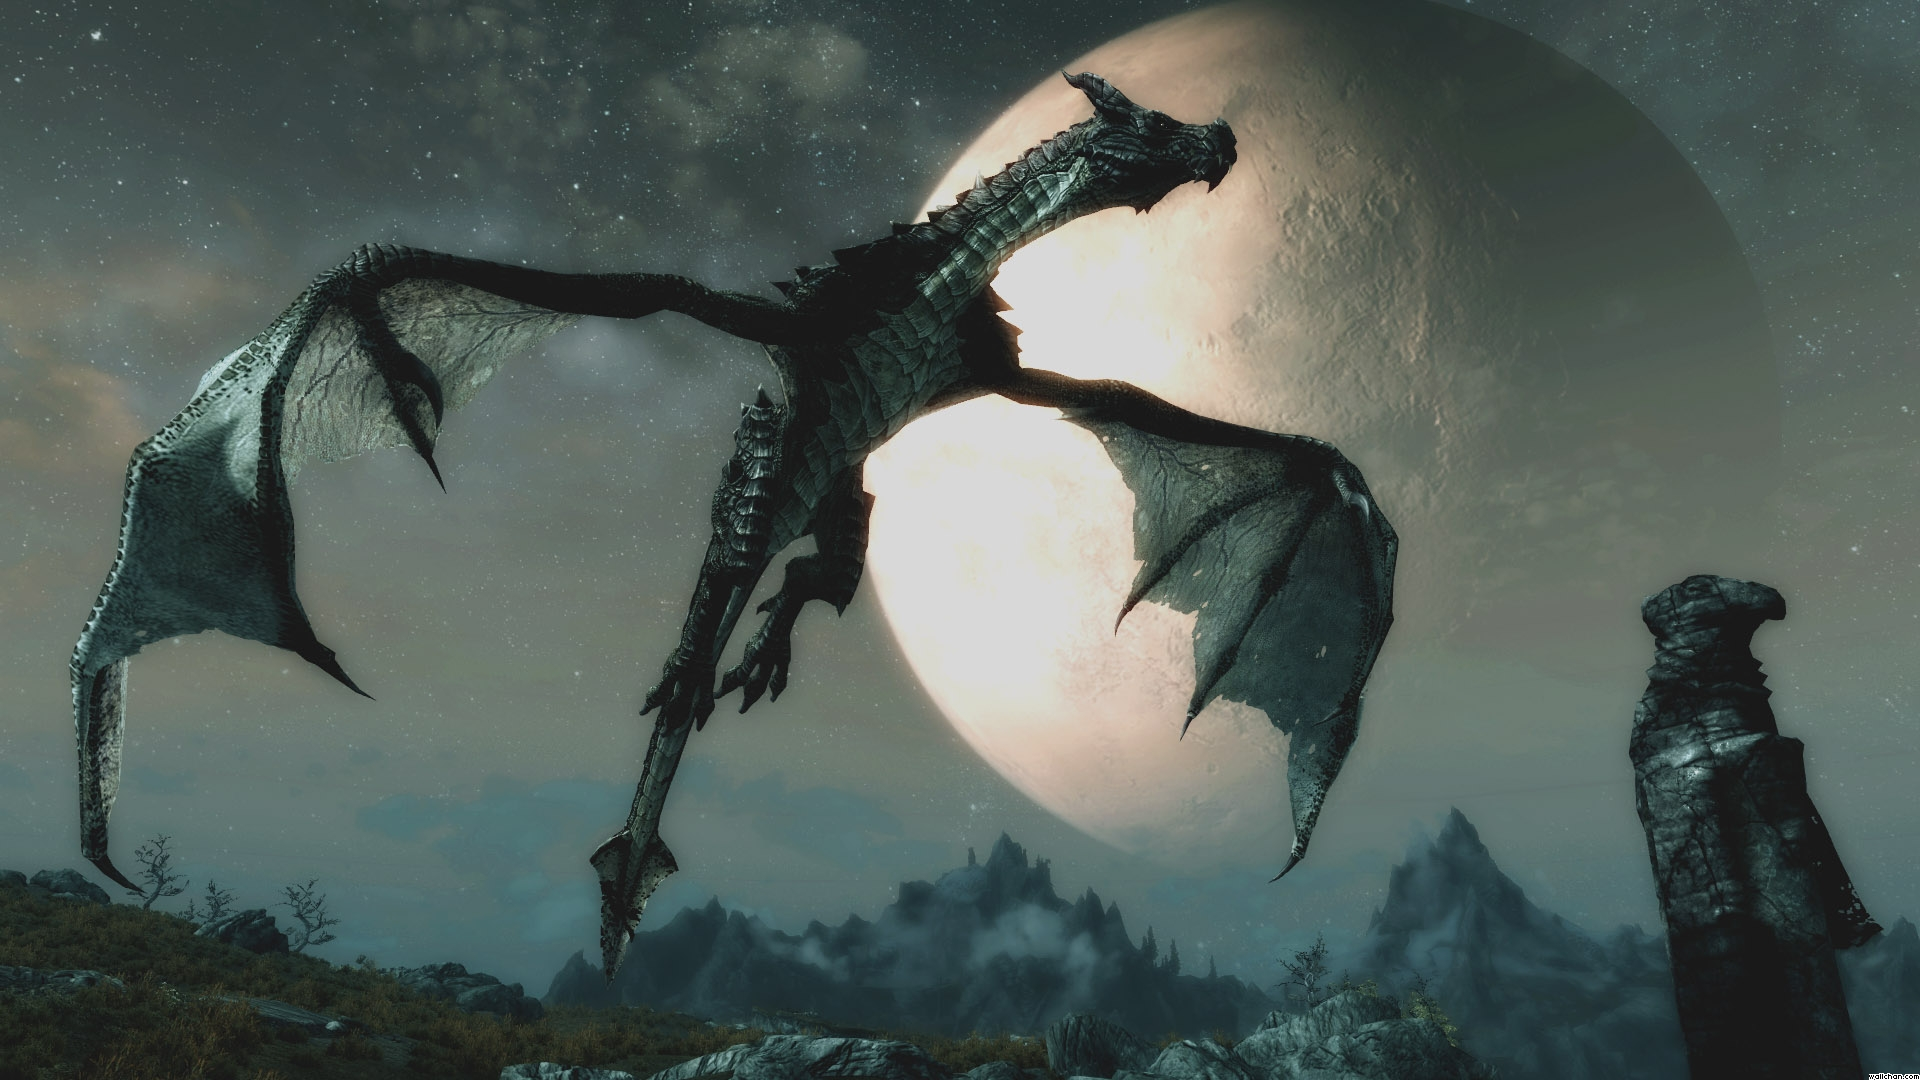 Report: The Elder Scrolls V: Skyrim's 'Dragonborn' DLC includes dragon mounts and a bit of Morrowind